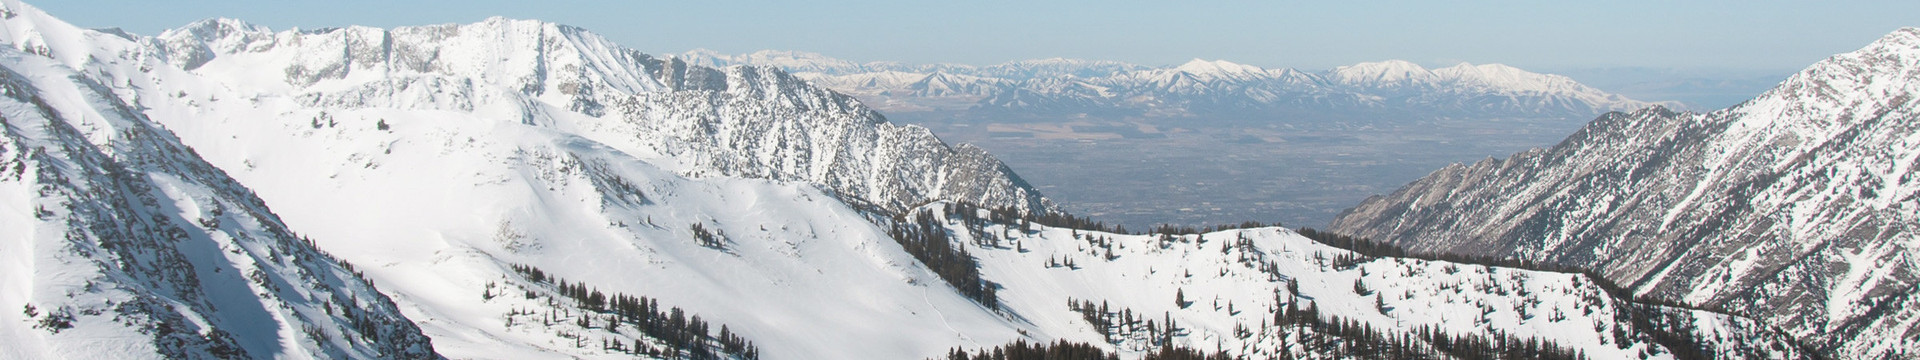 Aerial view of the mountains - Westgate Park City Resort & Spa